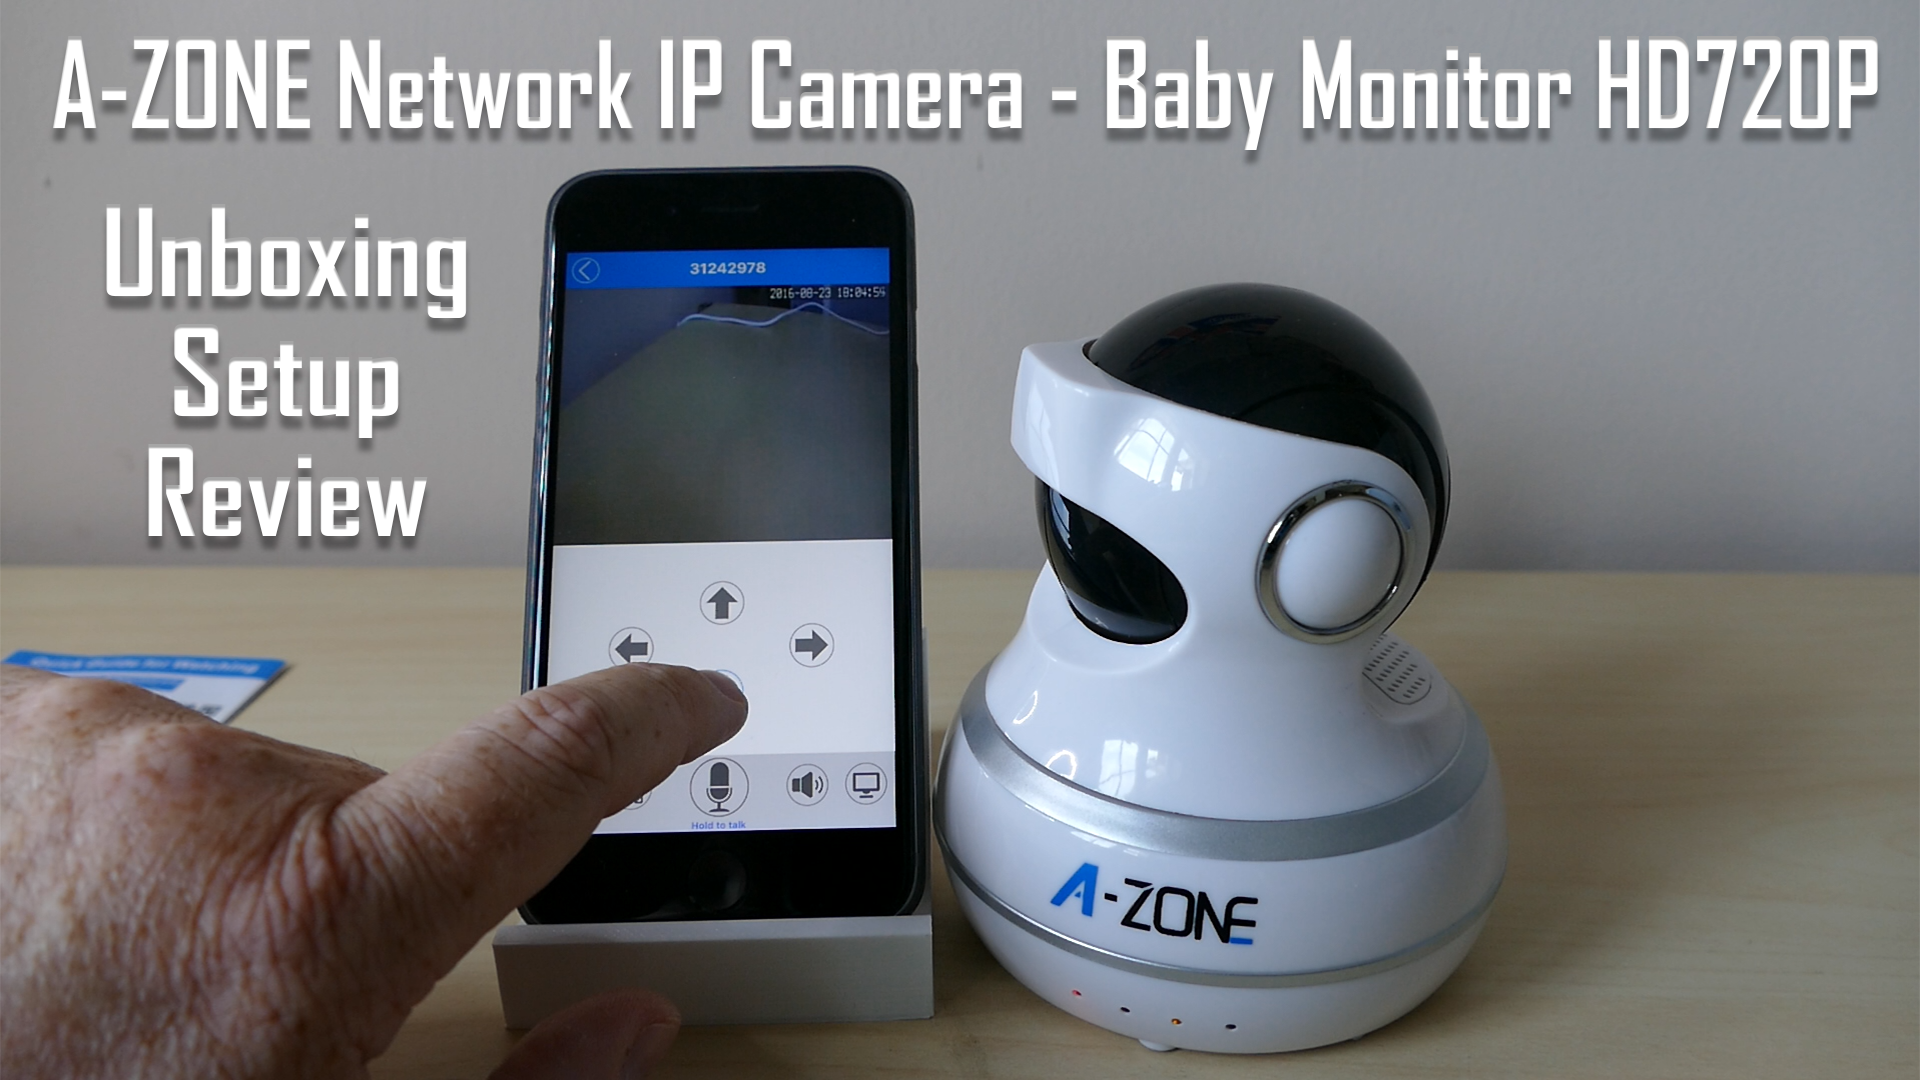 a zone network ip camera baby monitor hd720p unboxing setup and review. Black Bedroom Furniture Sets. Home Design Ideas